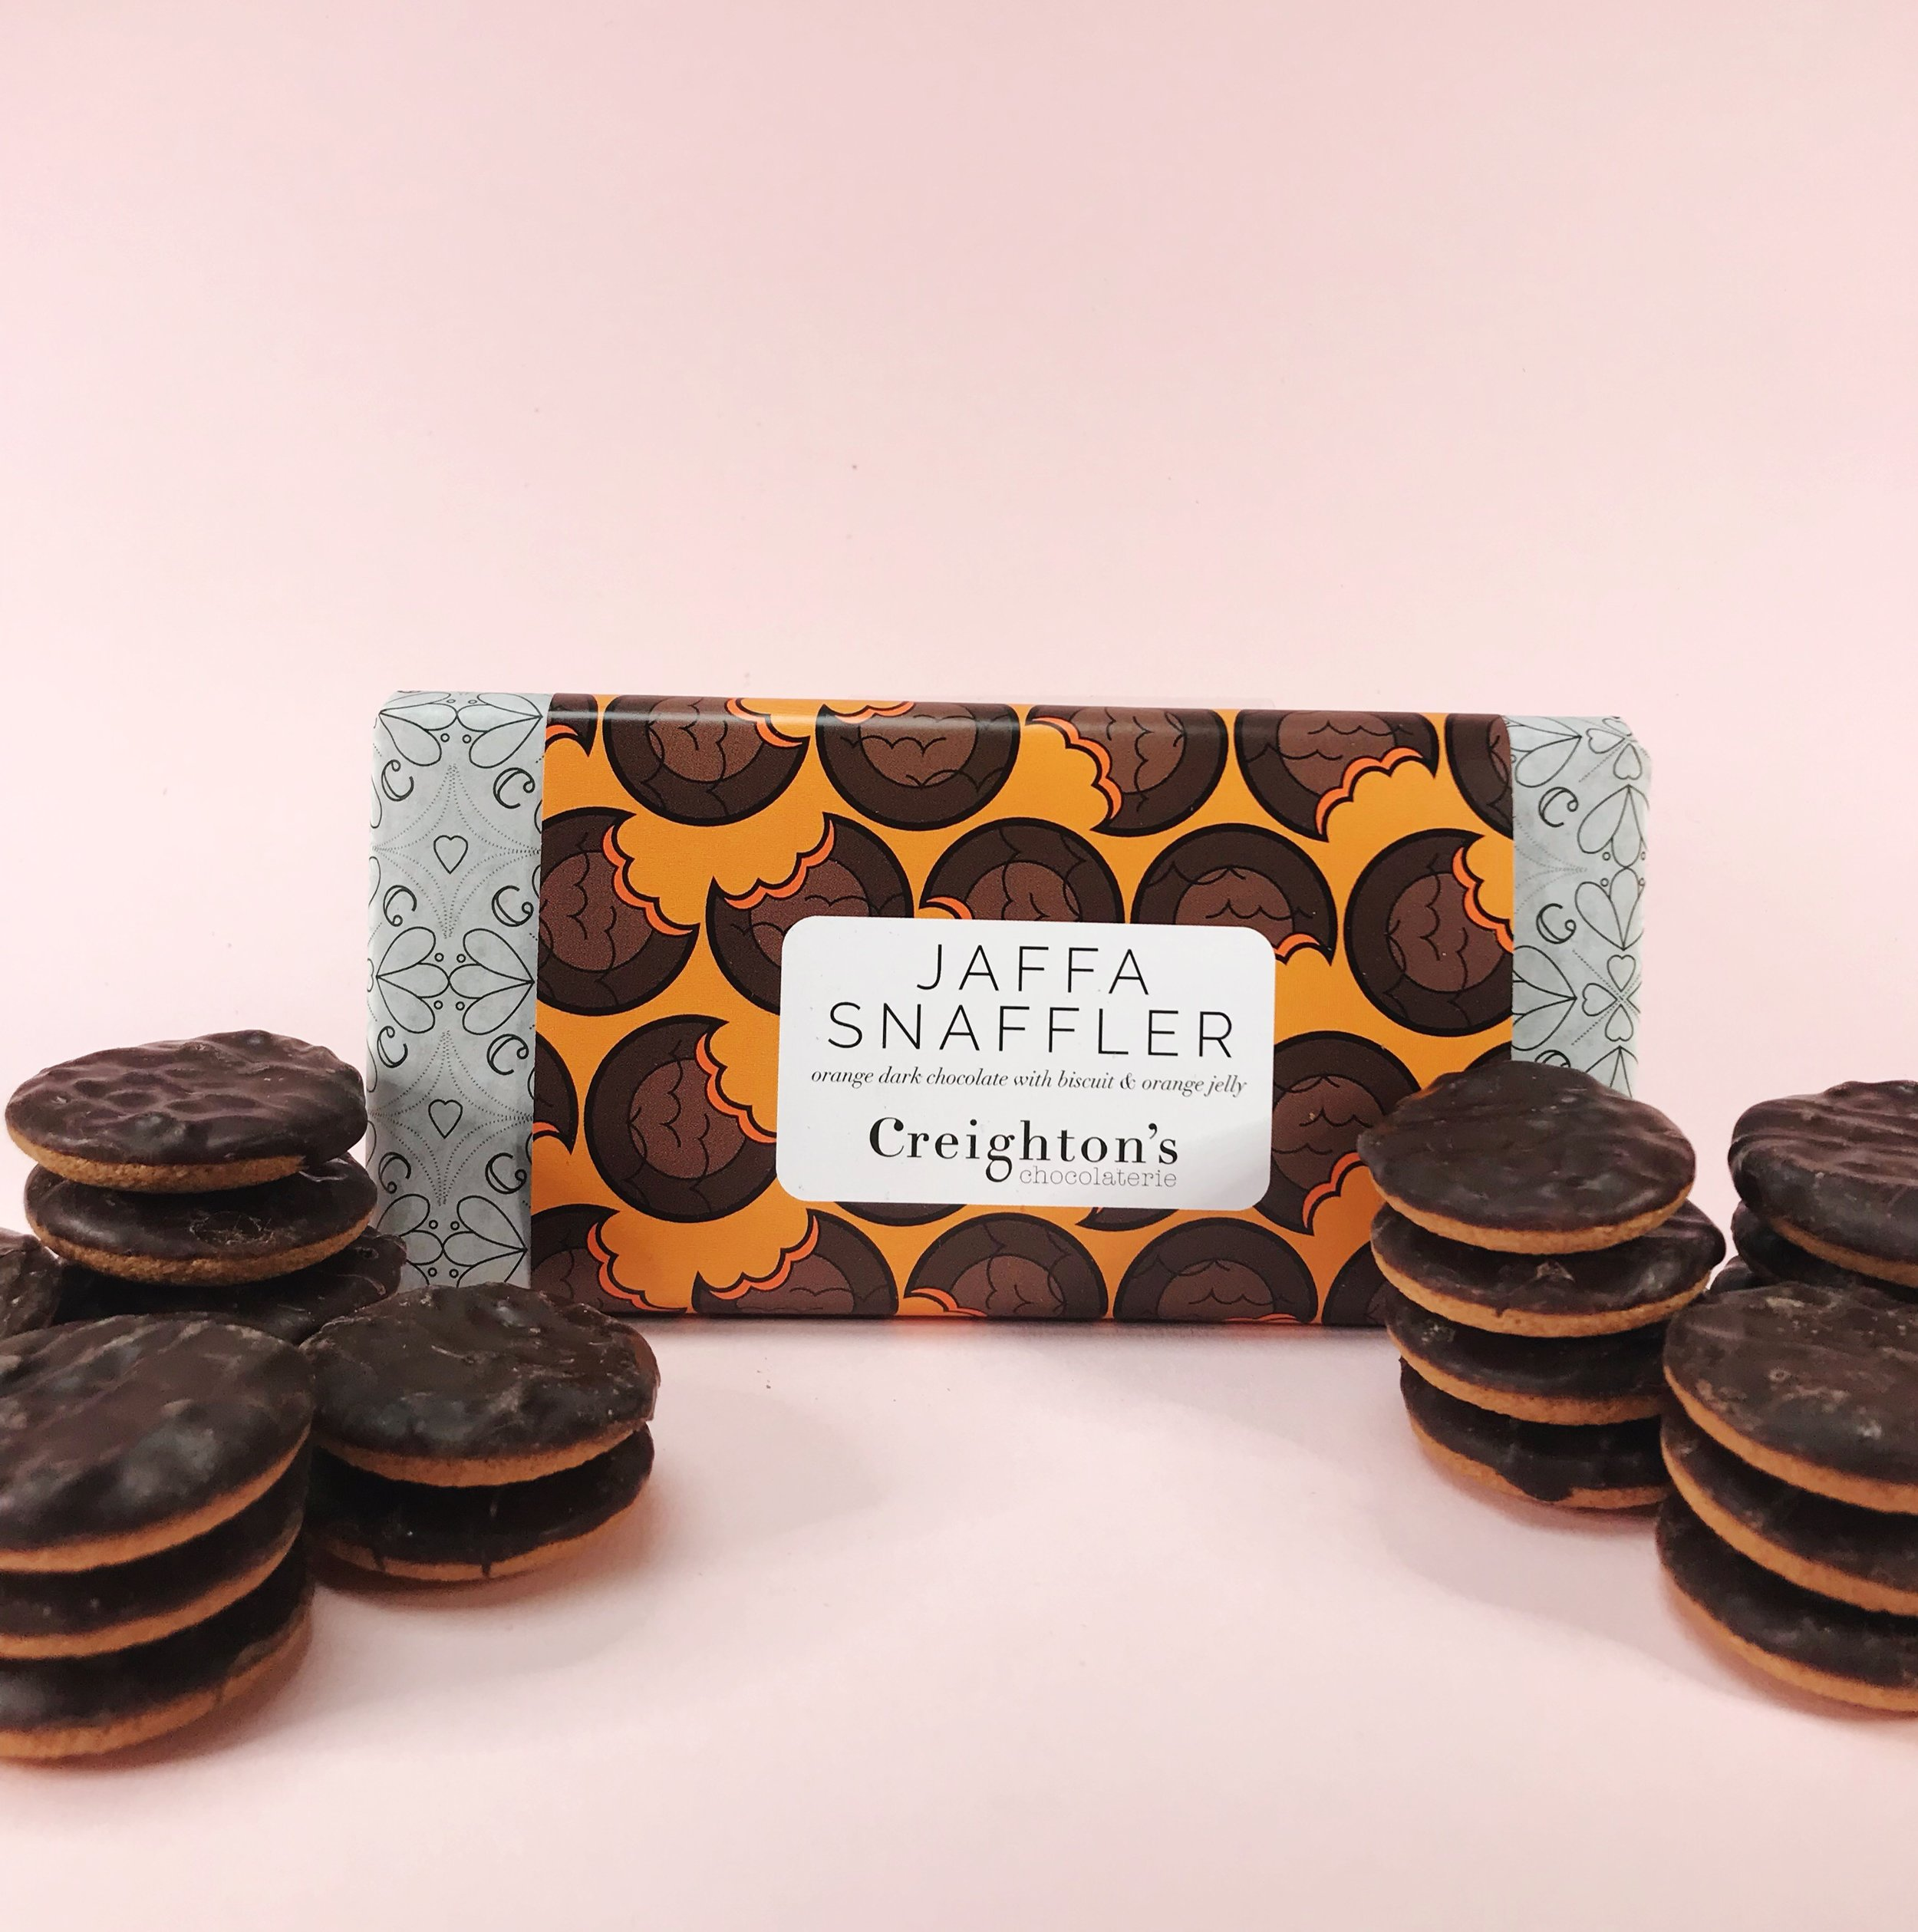 Creighton's Jaffa Snaffler dark chocolate - inspired by Jaffa cake